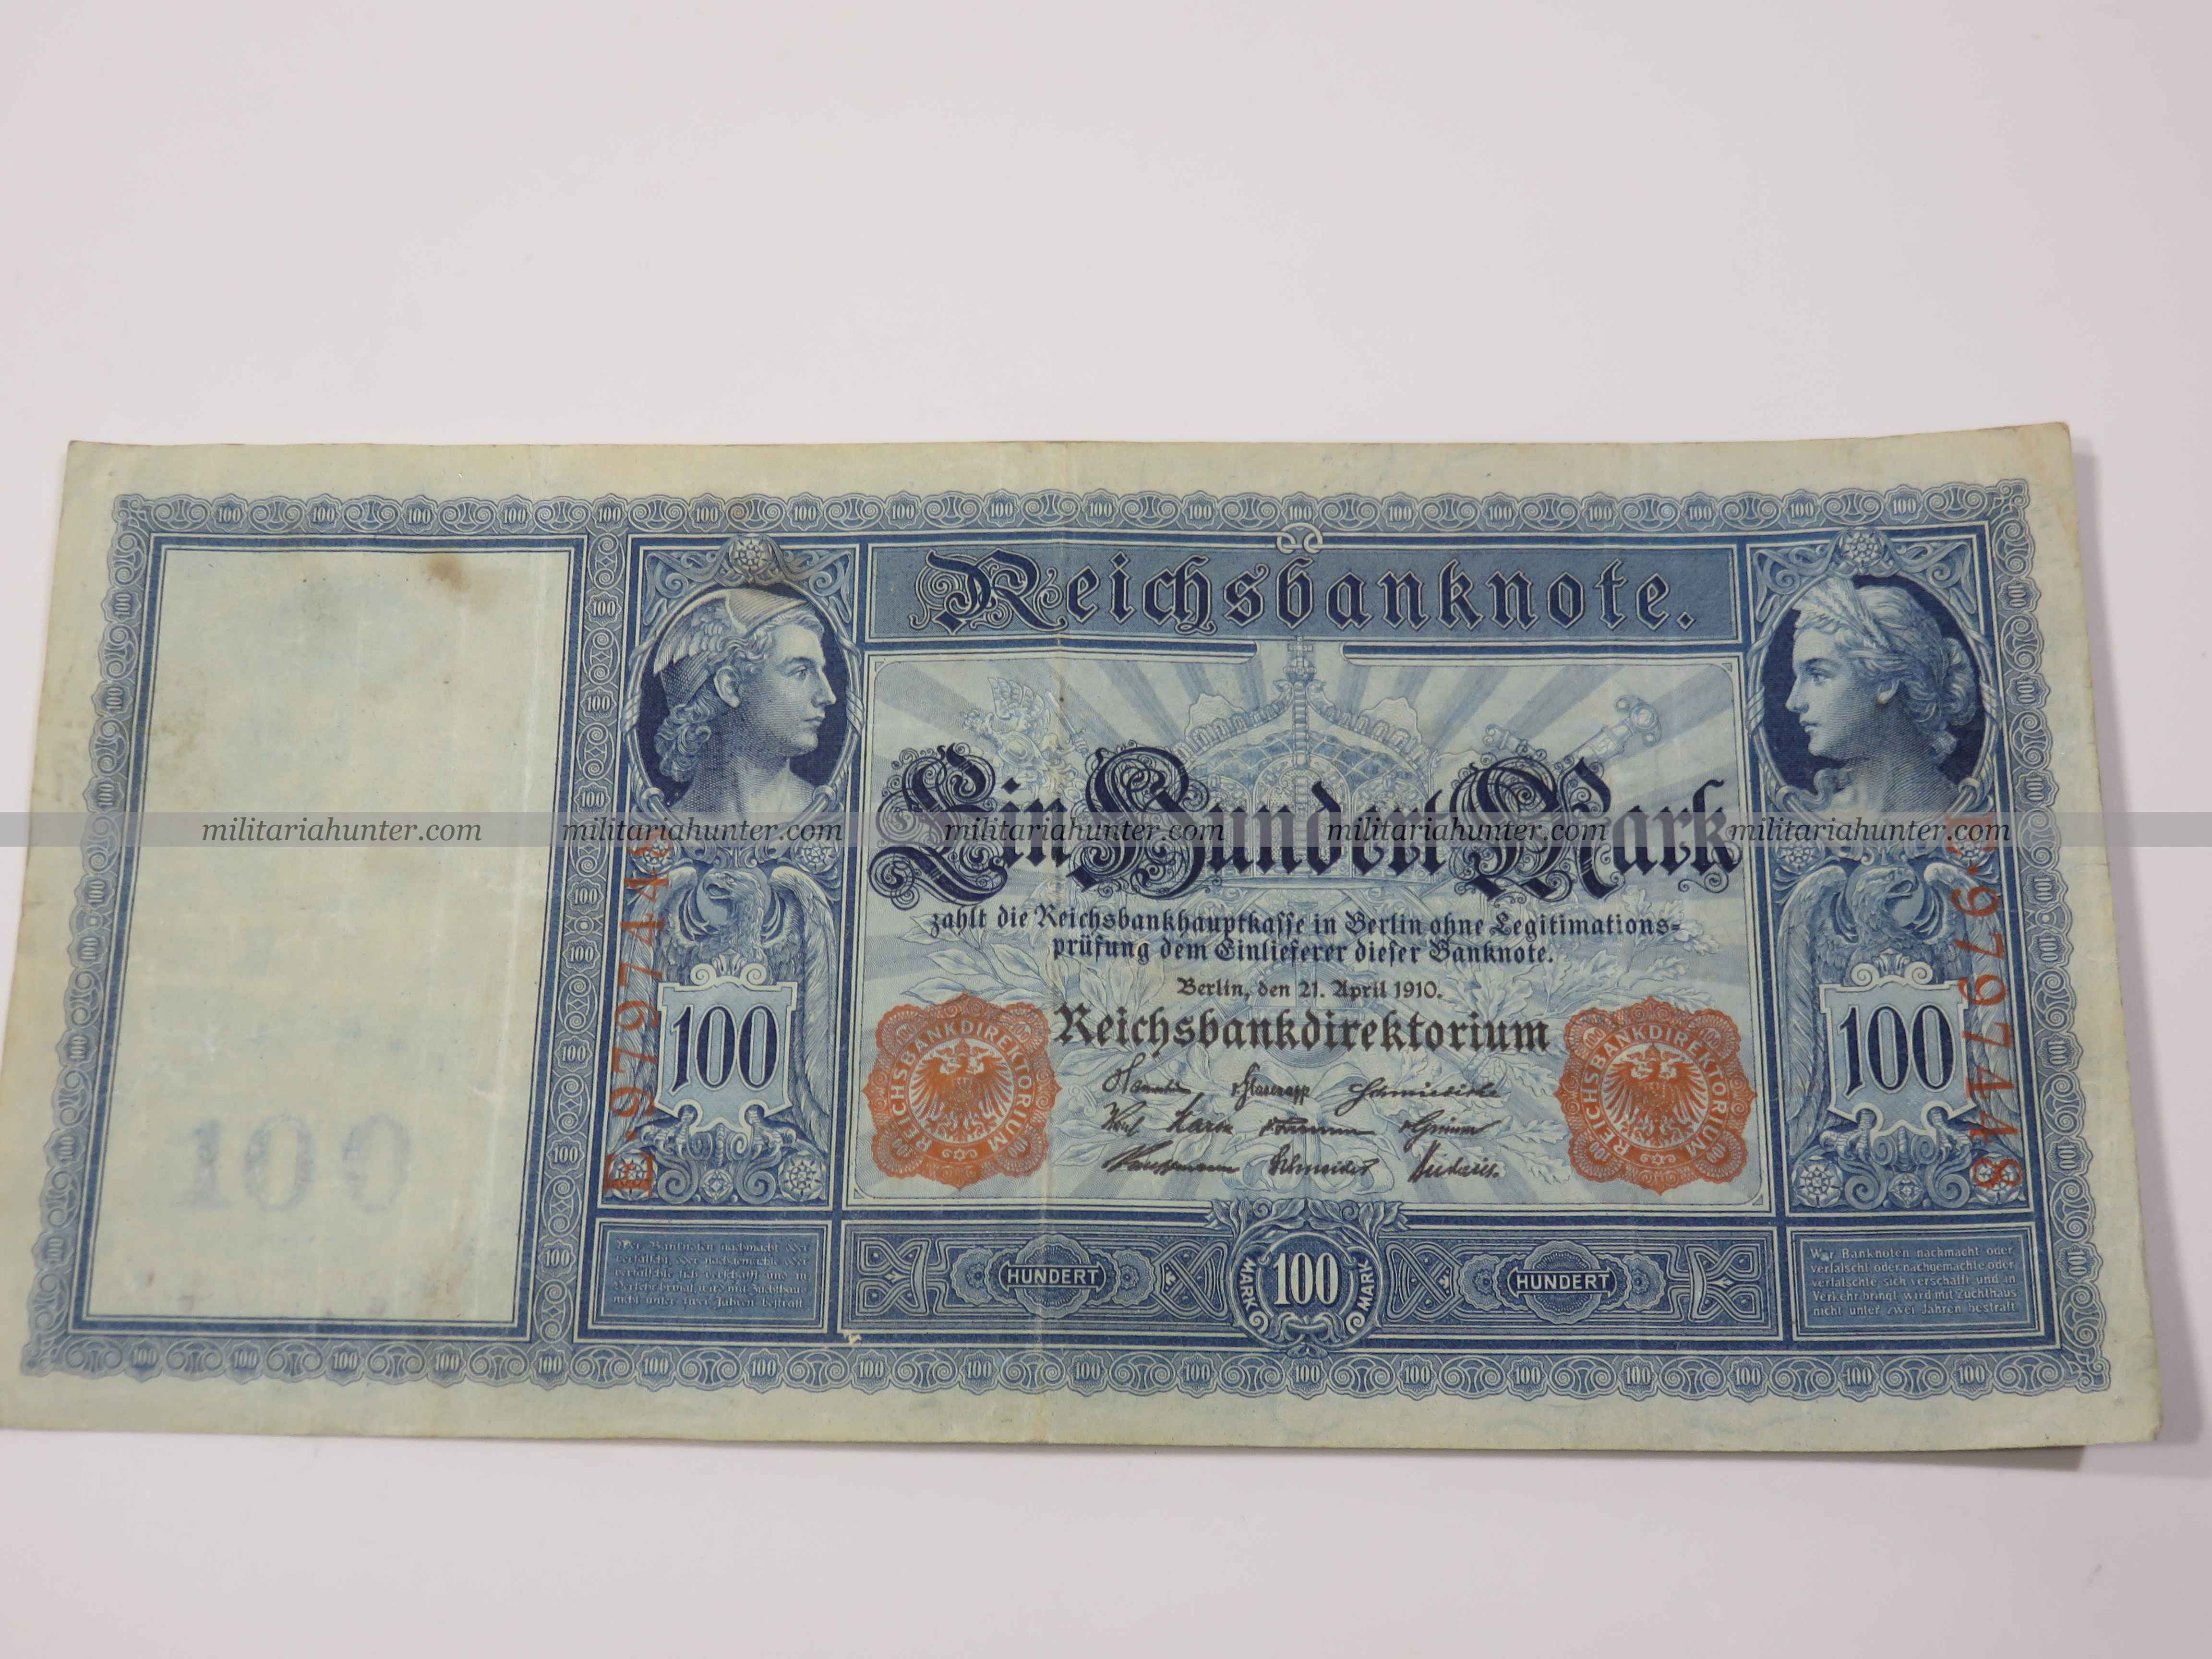 militaria : ww1 german banknote 100 Mark 1910 - billet allemand ww1 de 100 Mark